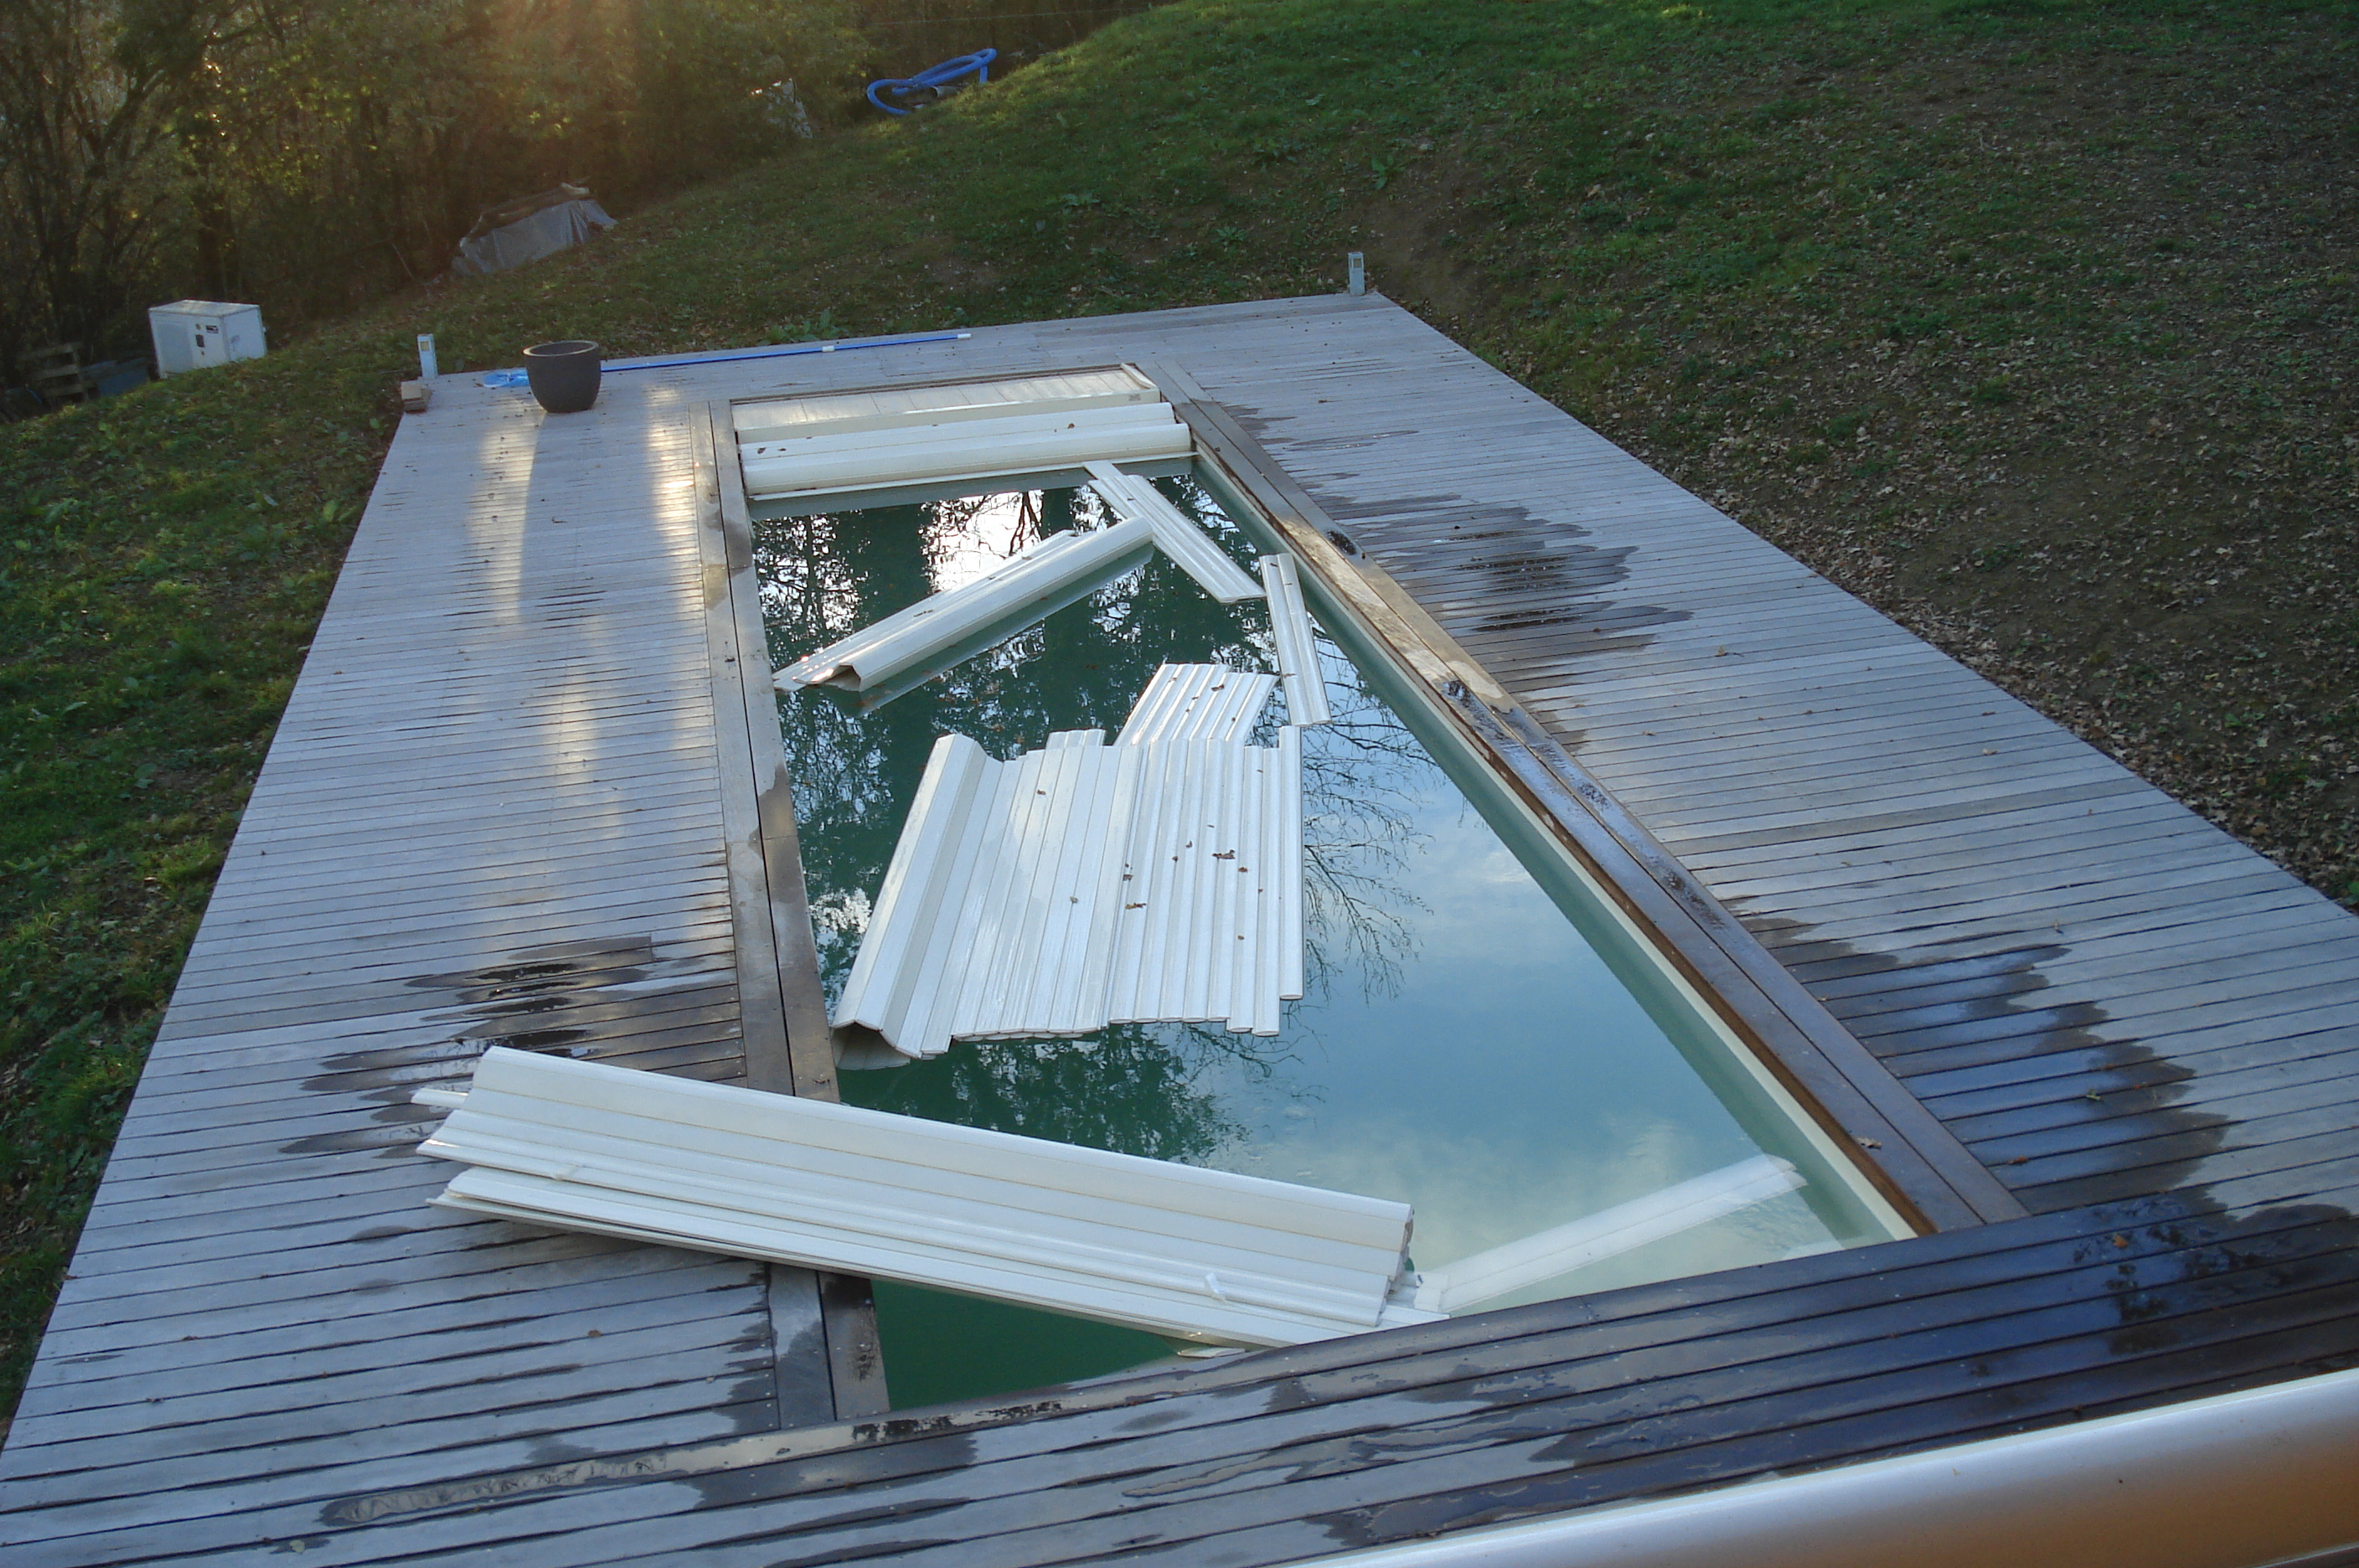 Renovation de piscine annecy r novation de piscine aix for Piscine de tourcoing les bains